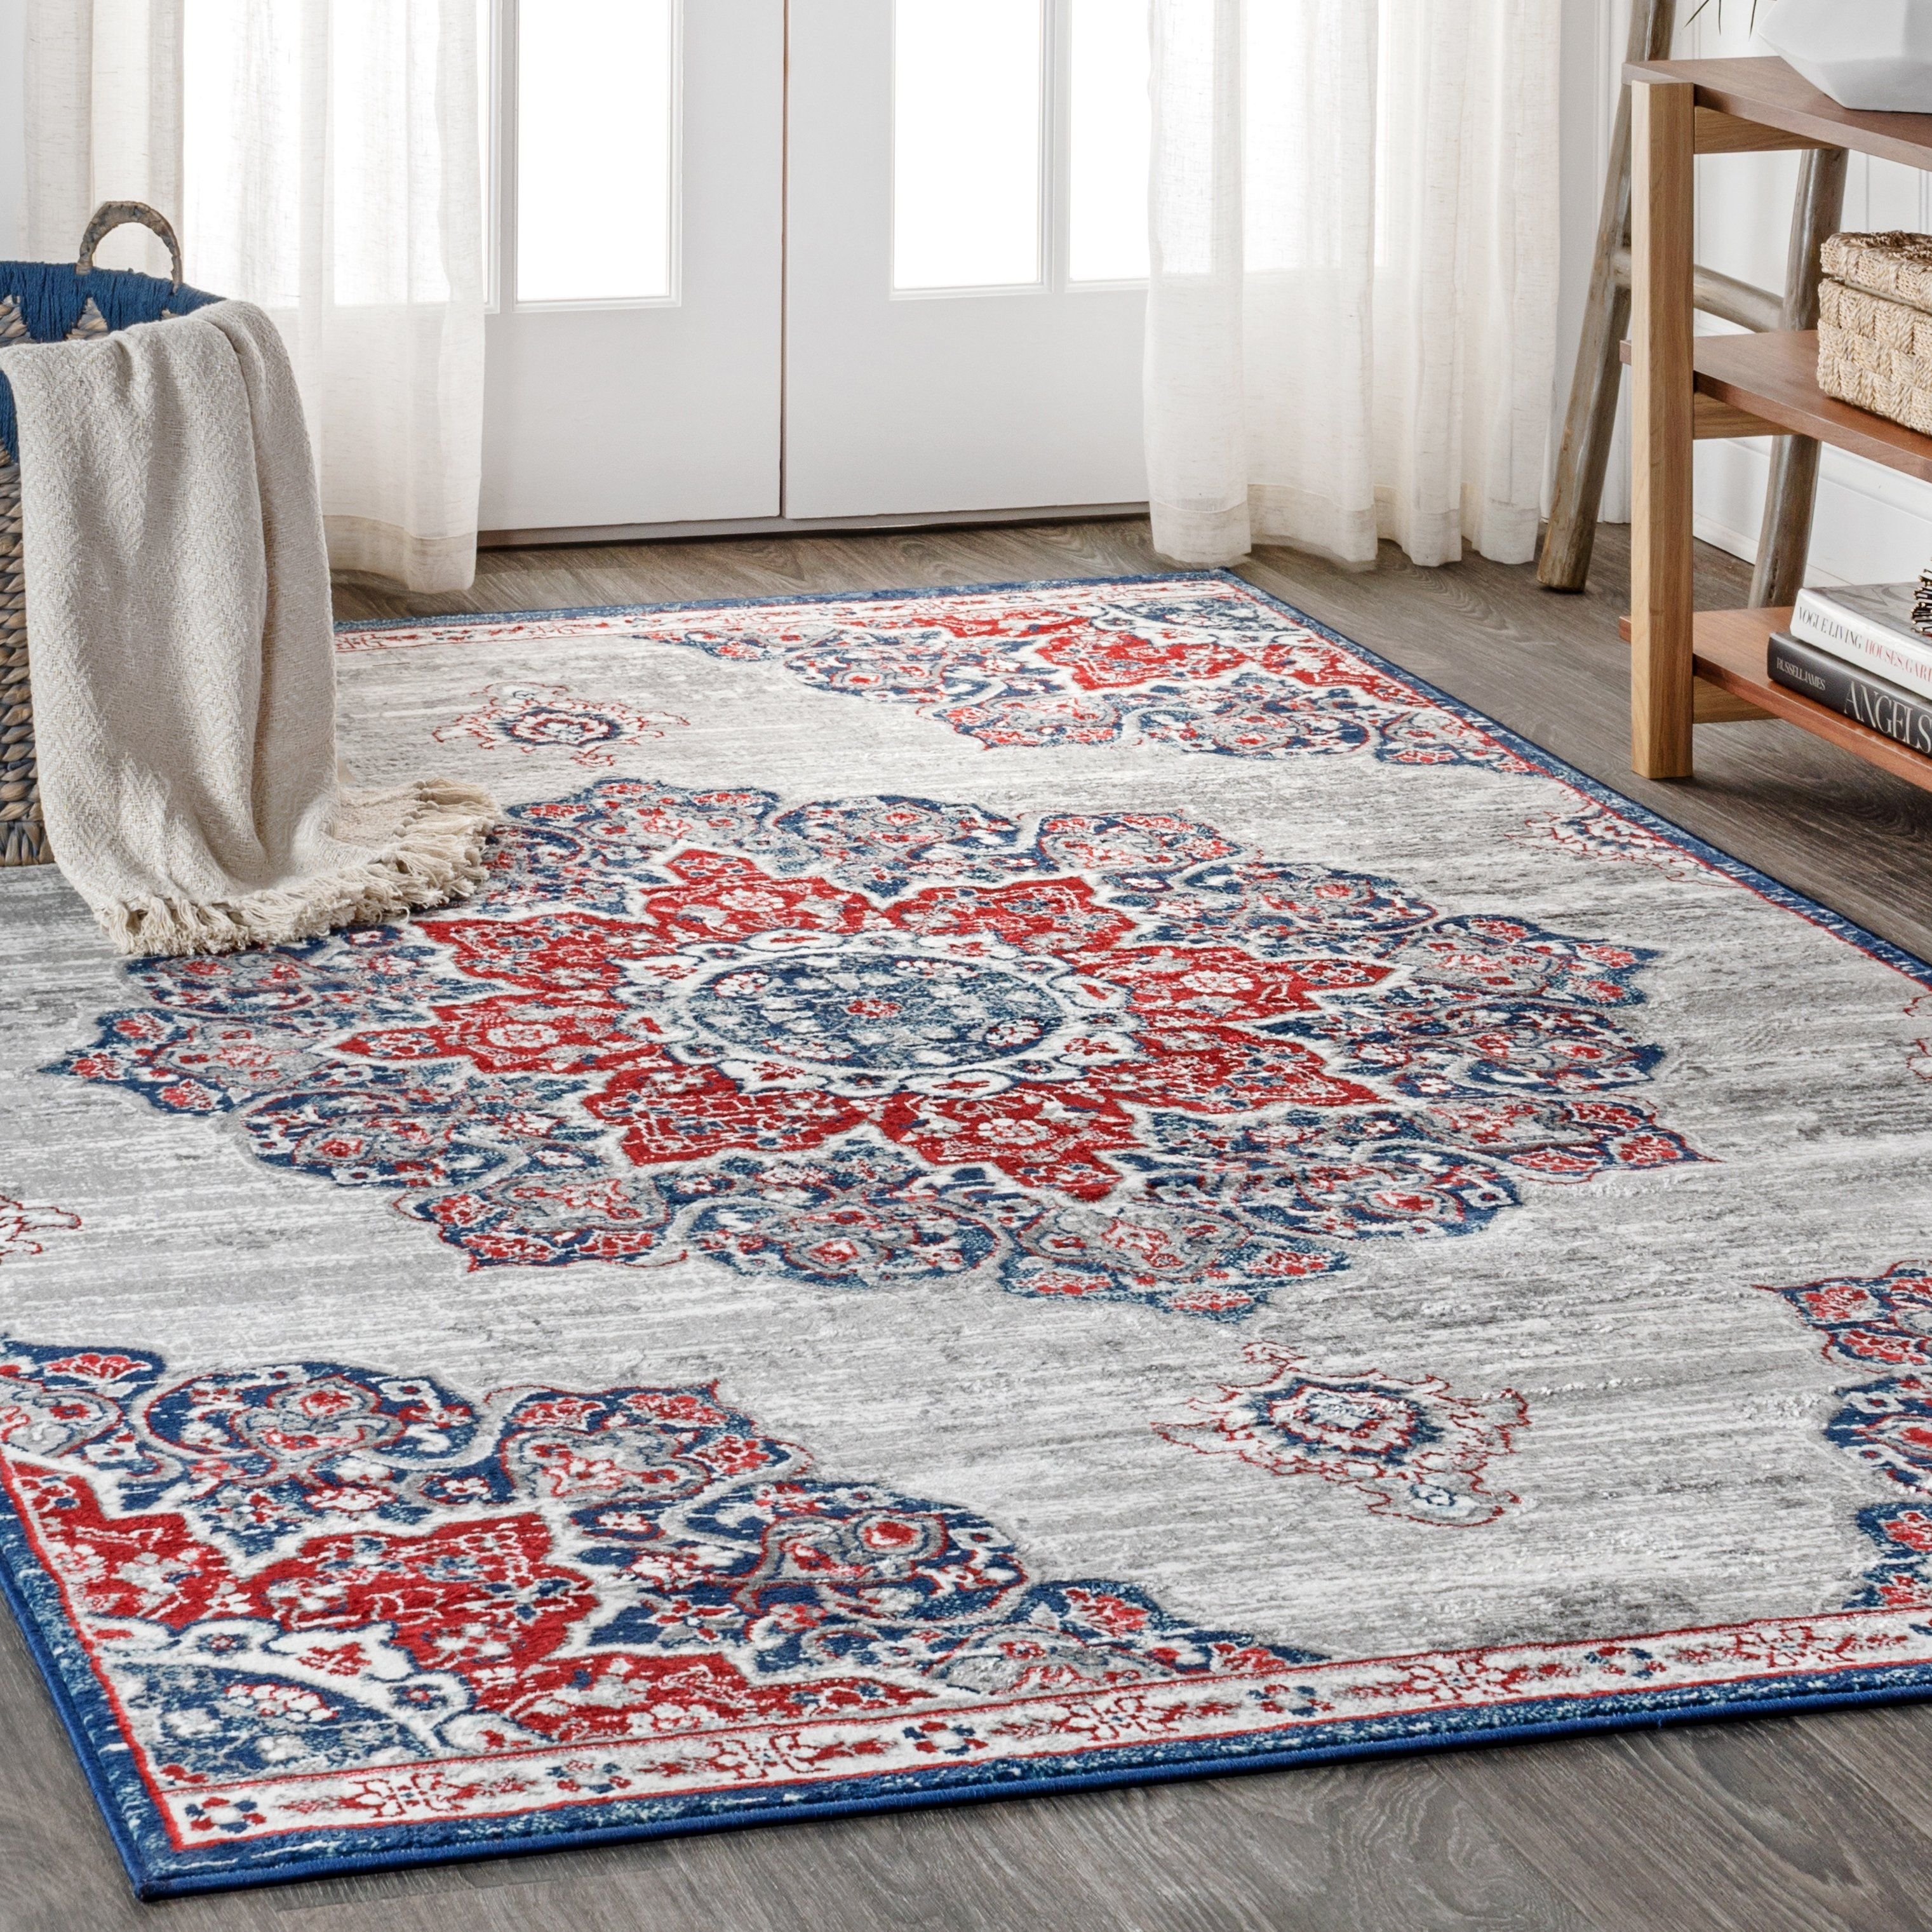 Jonathan Y Modern Persian Vintage Medallion Navy Red Distressed Area Rug 2 3 X 8 Navy Red Blue Rugs Area Rugs Pink Rug